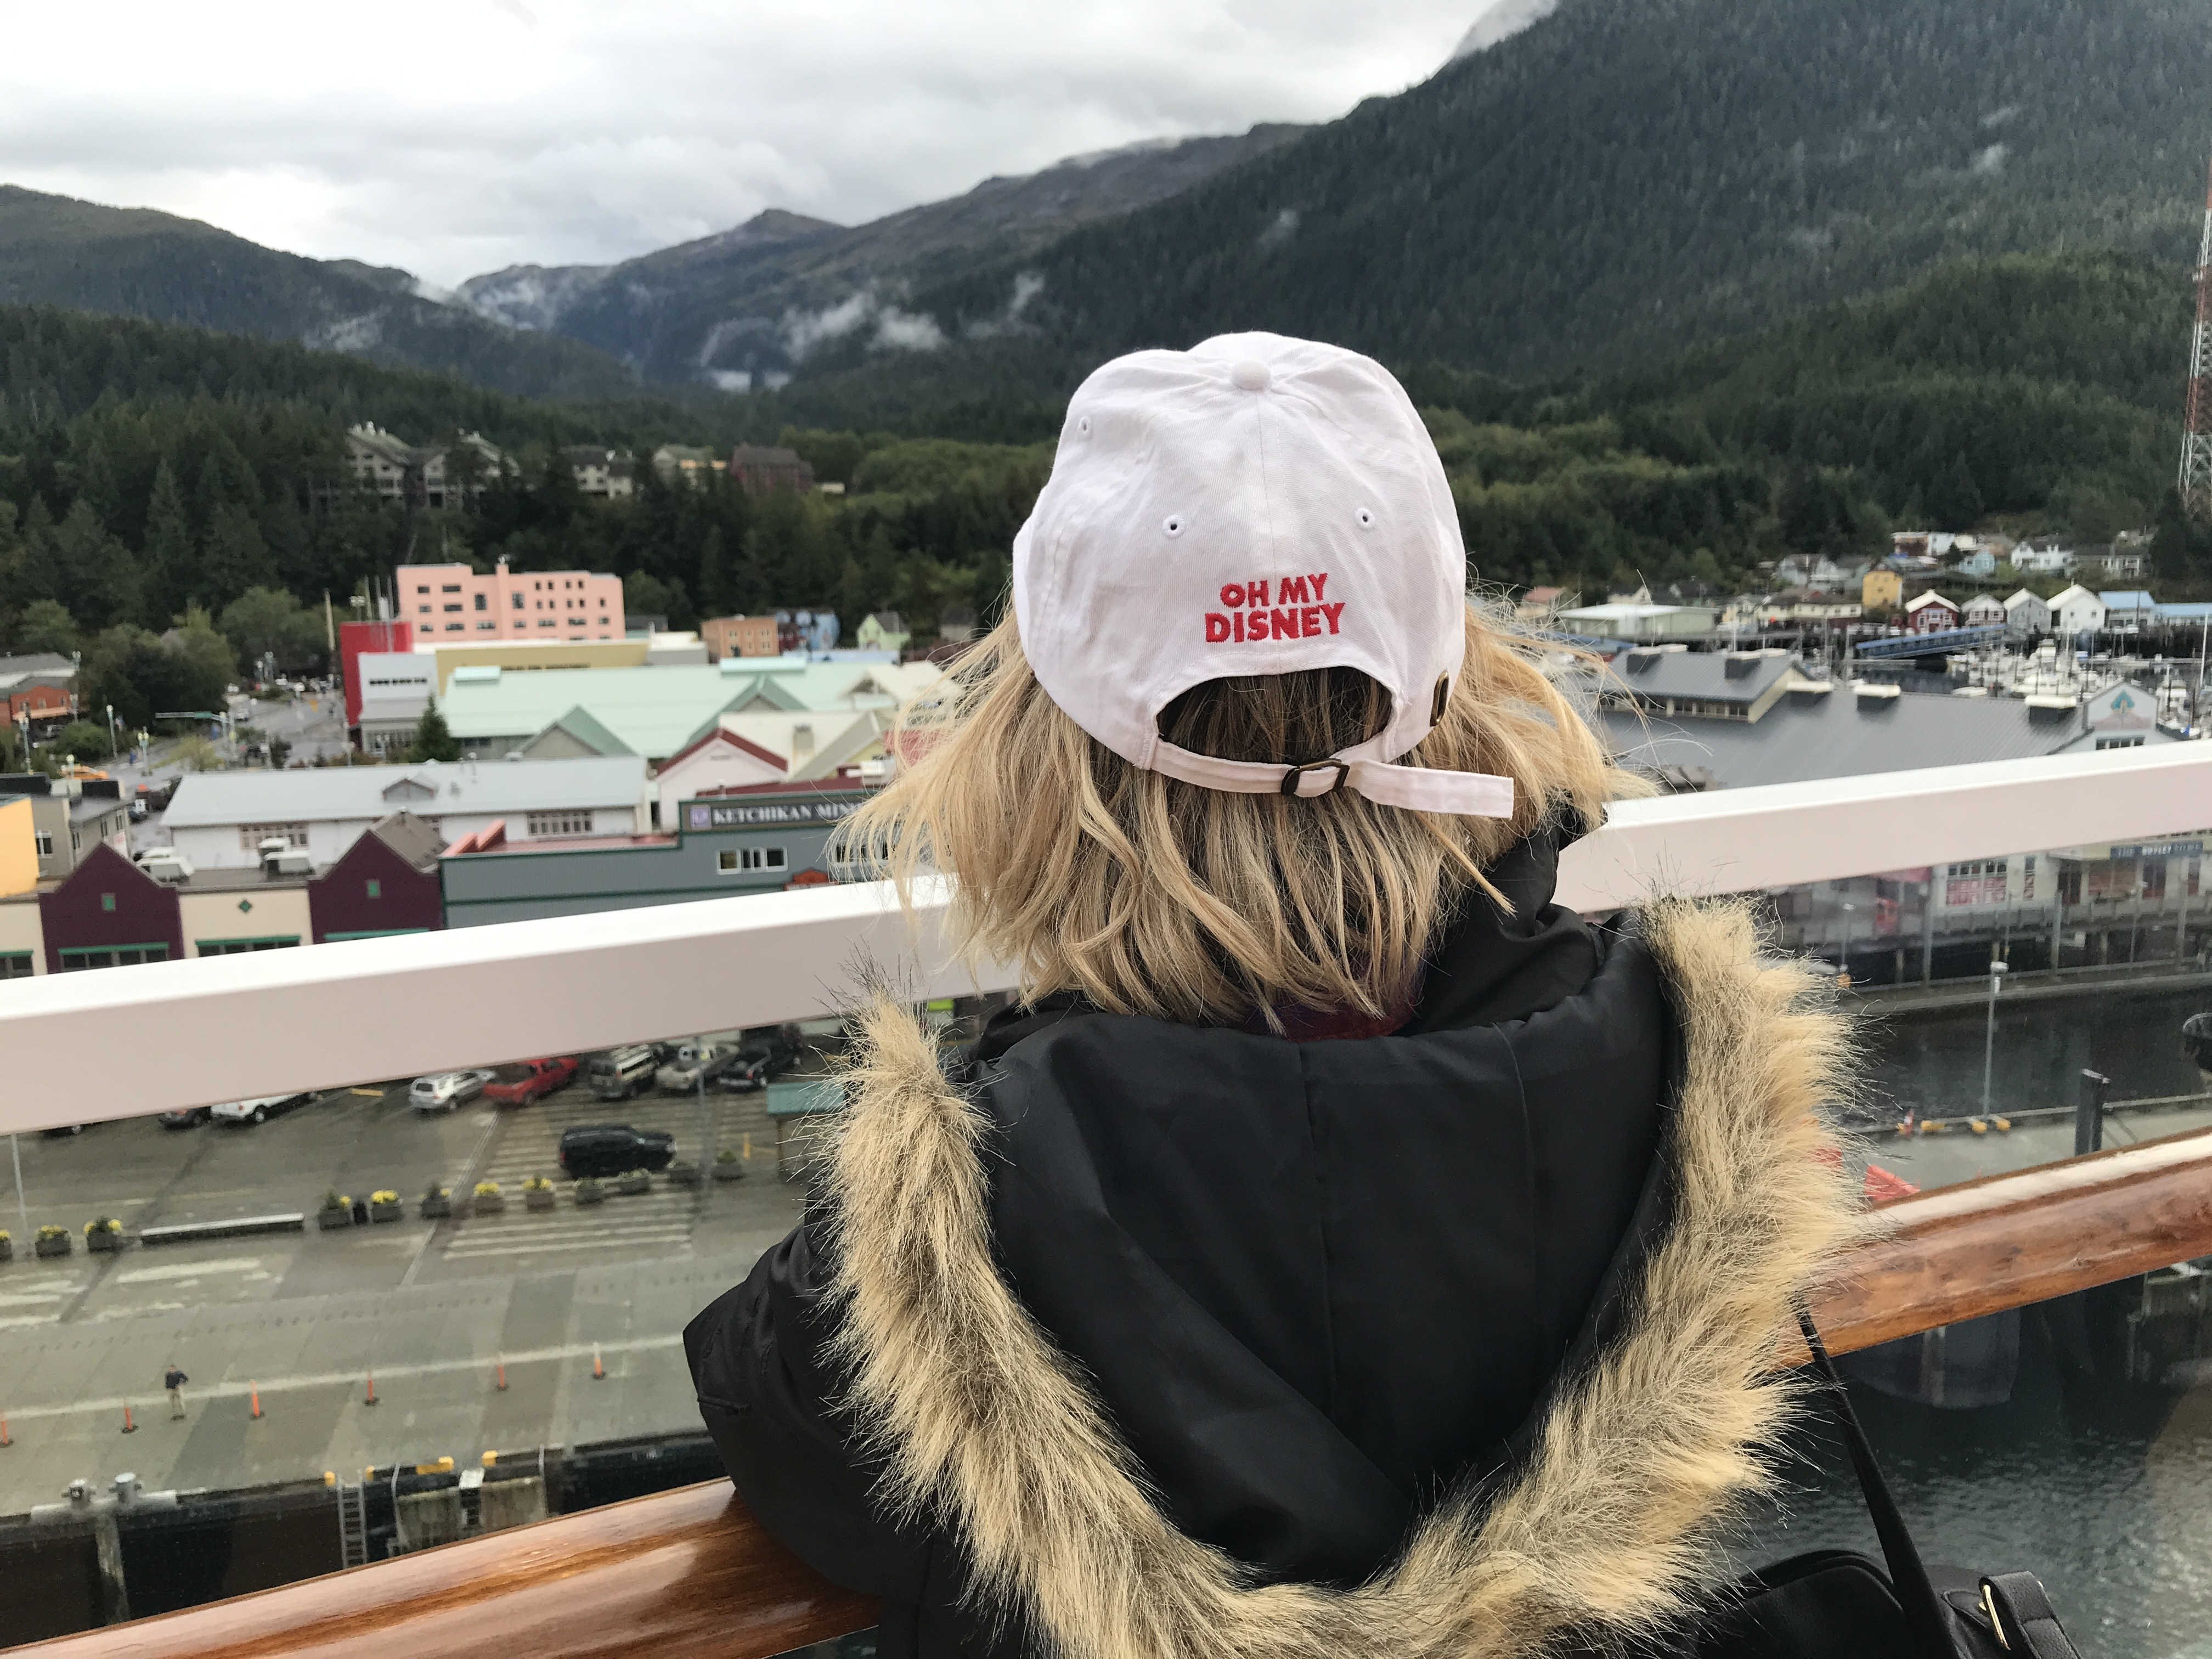 View of Ketchikan From the Disney Wonder Deck on the Disney Alaska Cruise with Host Wearing Oh My Disney Hat